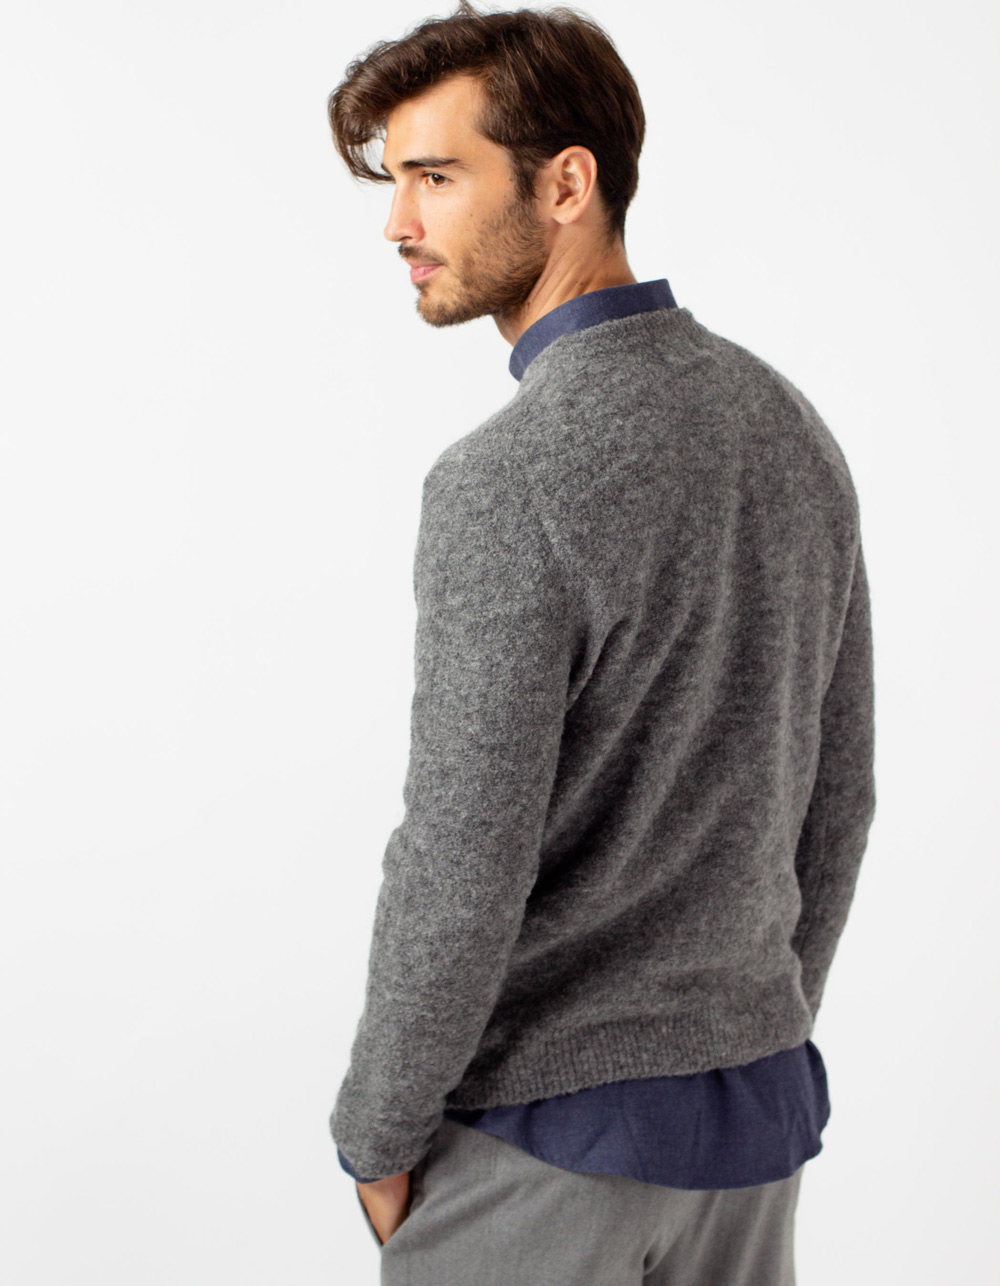 Grey round collar jersey - Backside